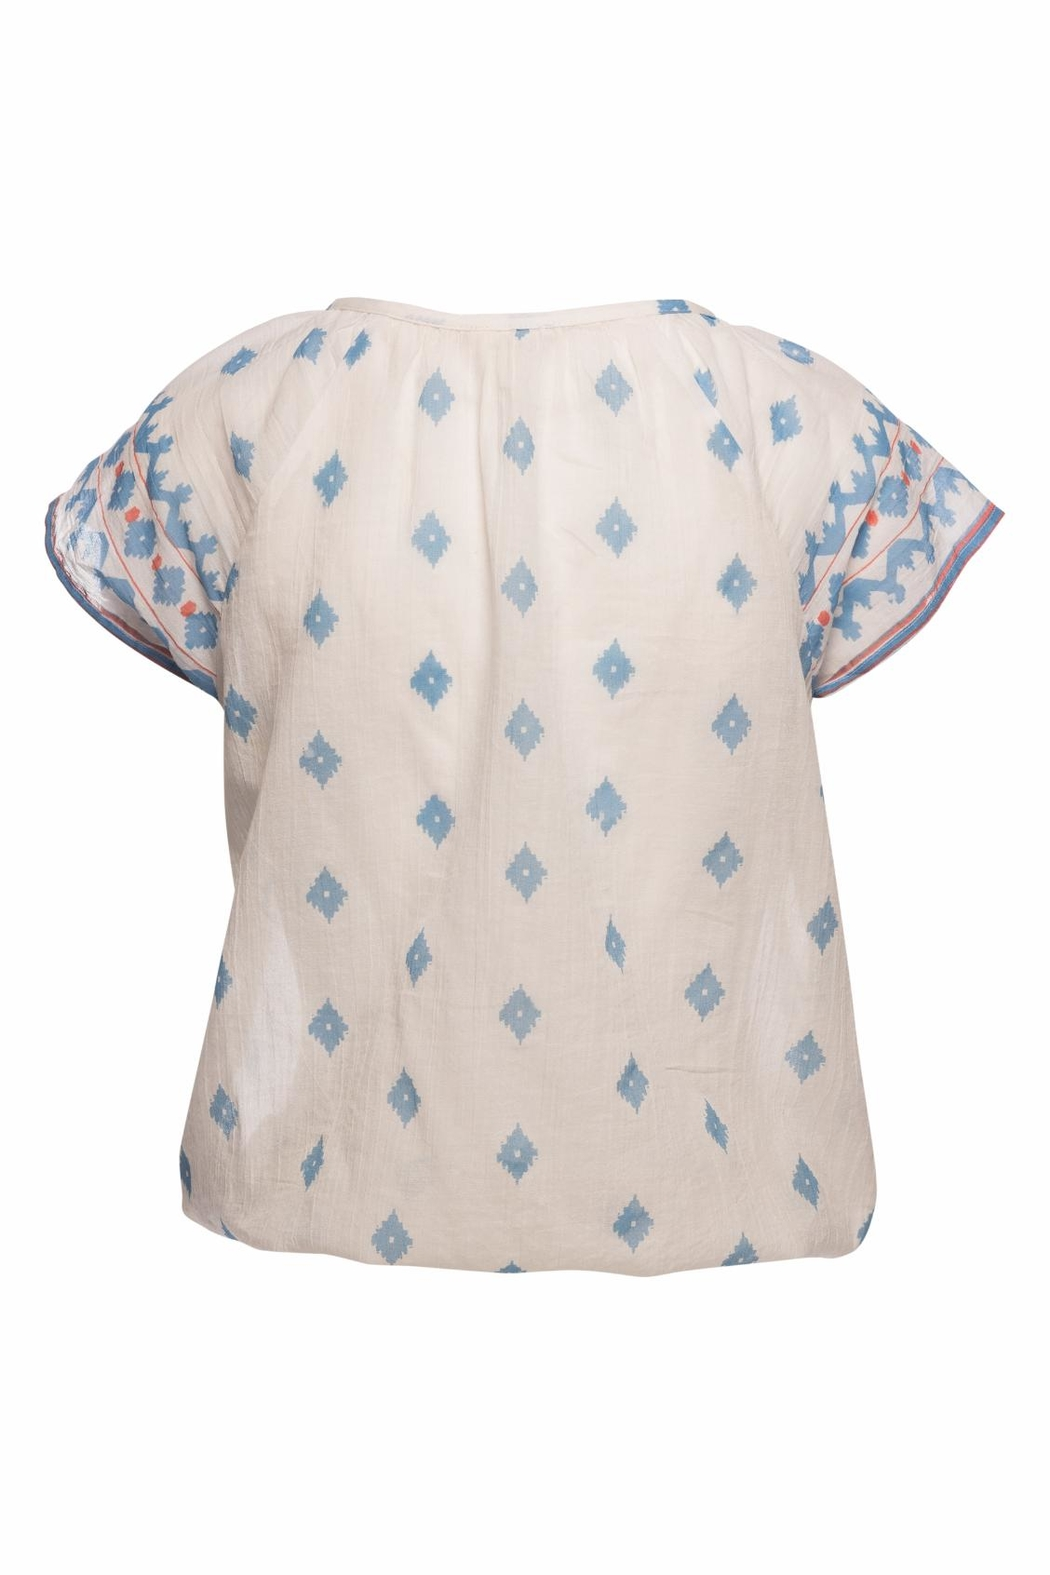 Soft Joie Dolan B Top - Front Full Image